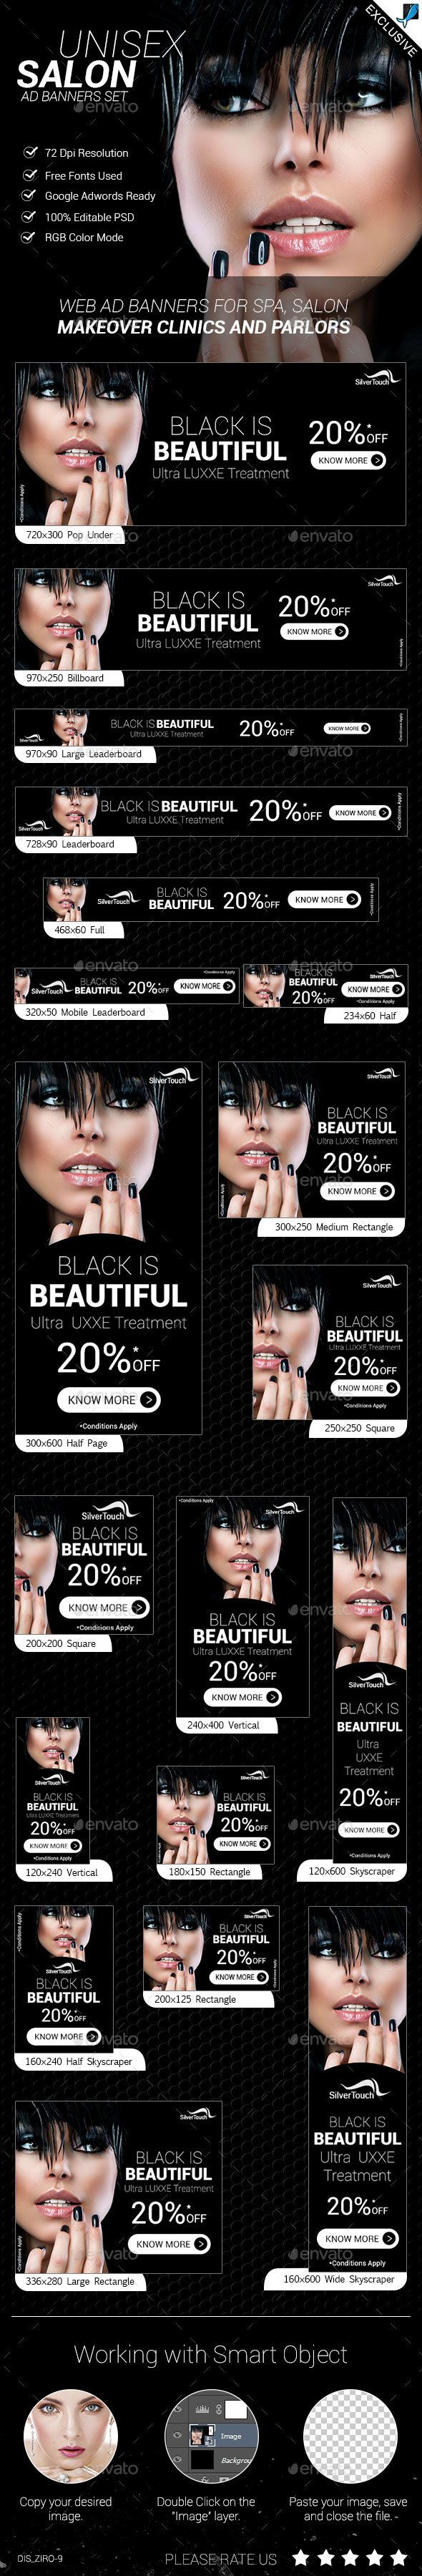 Unisex Salon  Ad Banners Set